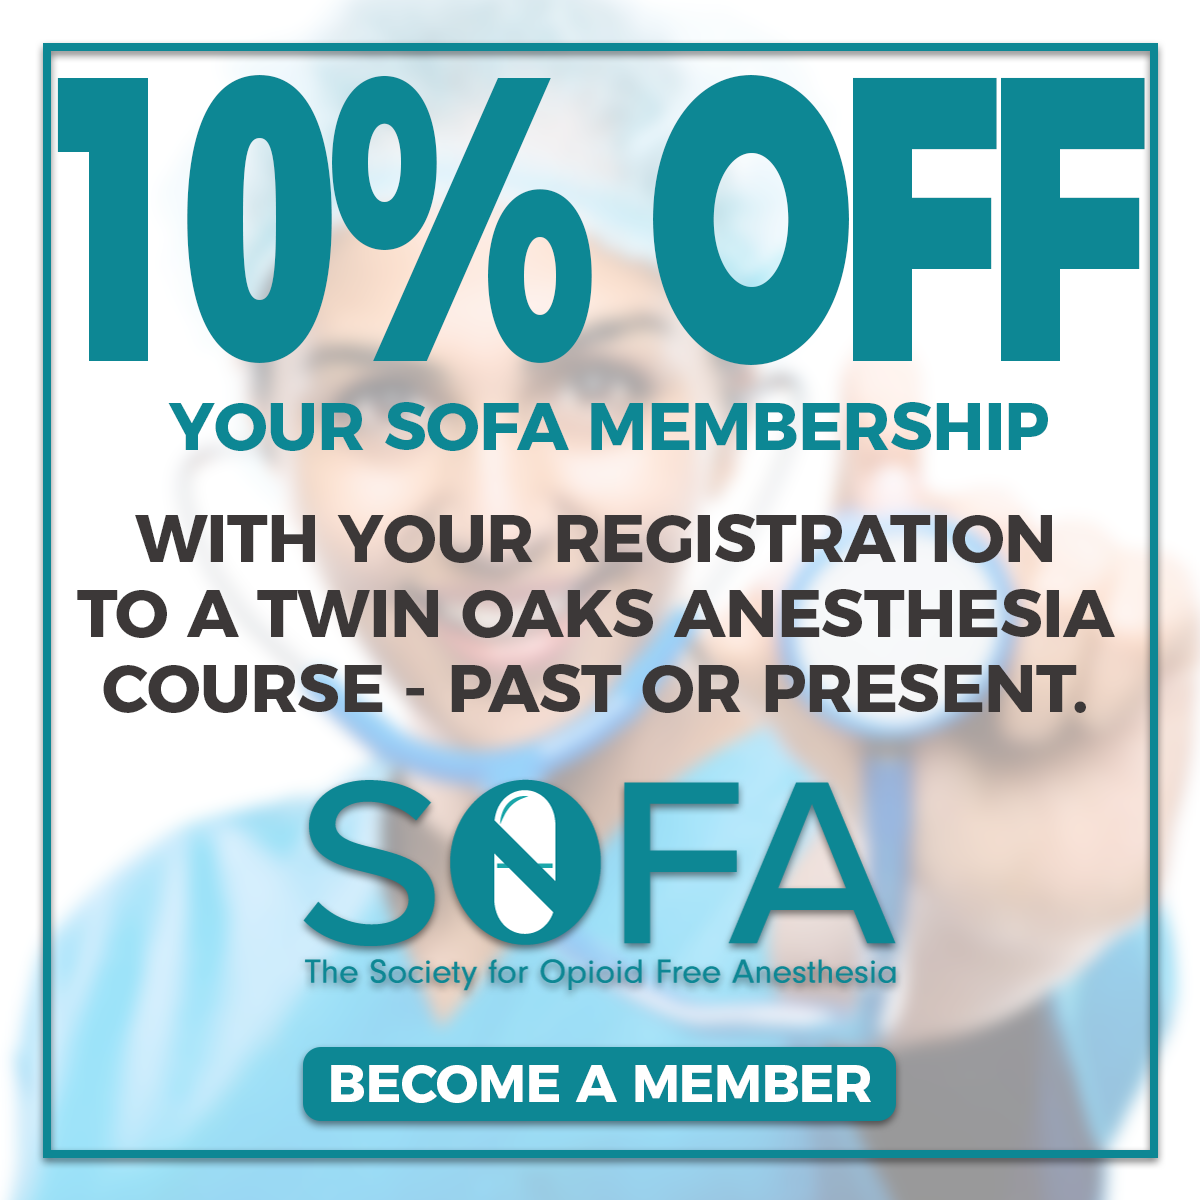 Copy of Copy of SOFA membership